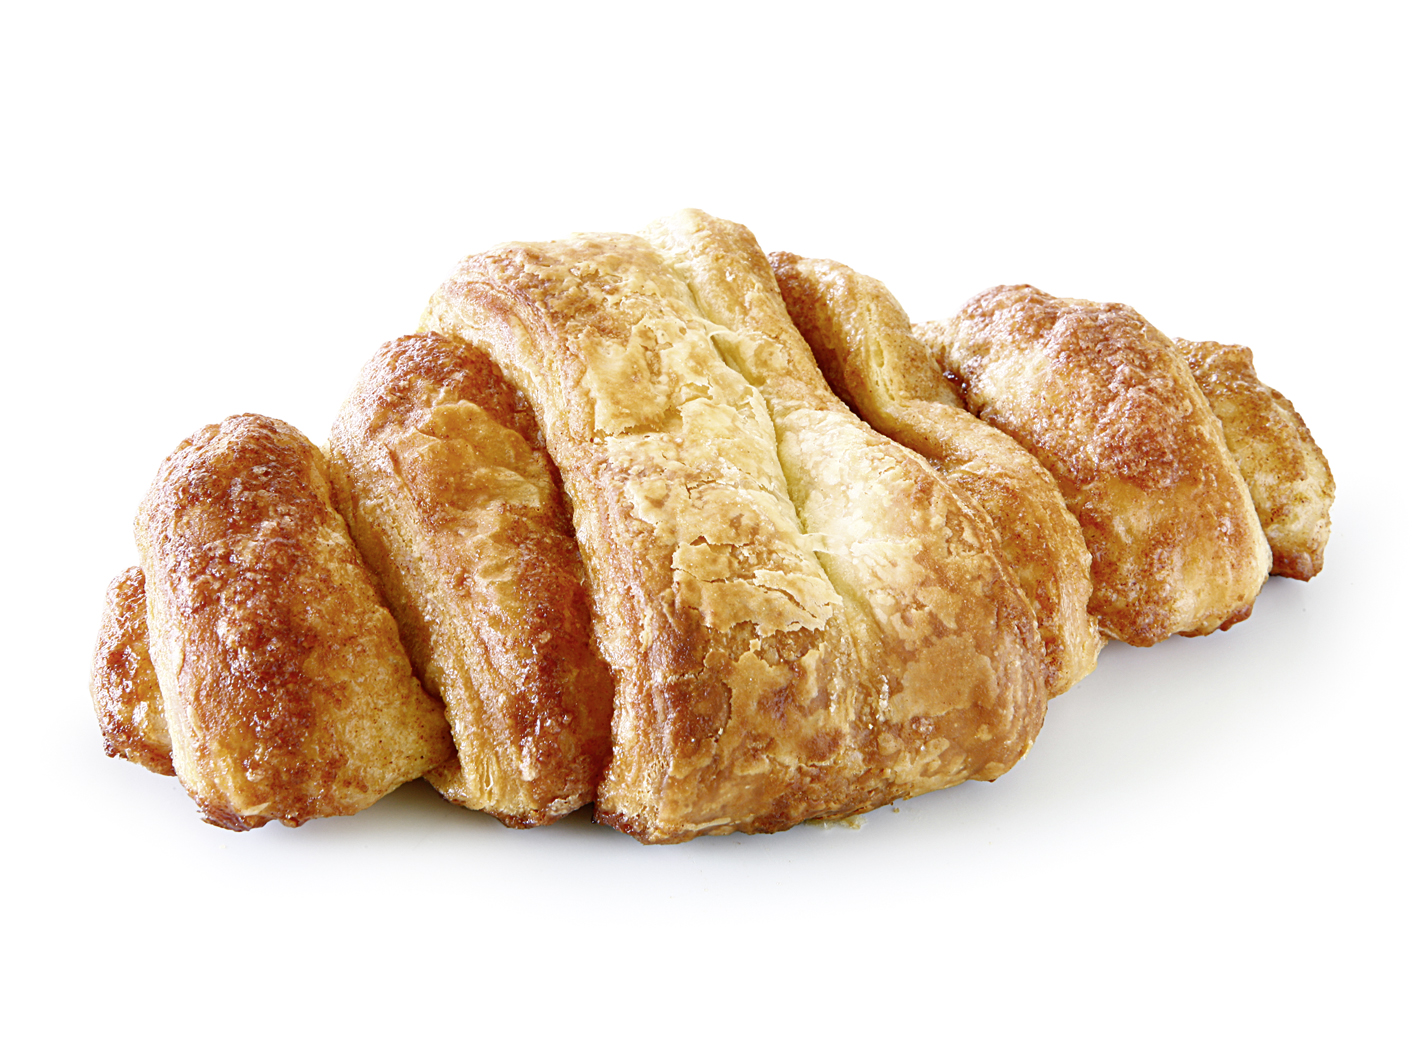 Cinnamon pastry - Puff pastry in typical wrapped look/ finished with cinnamon